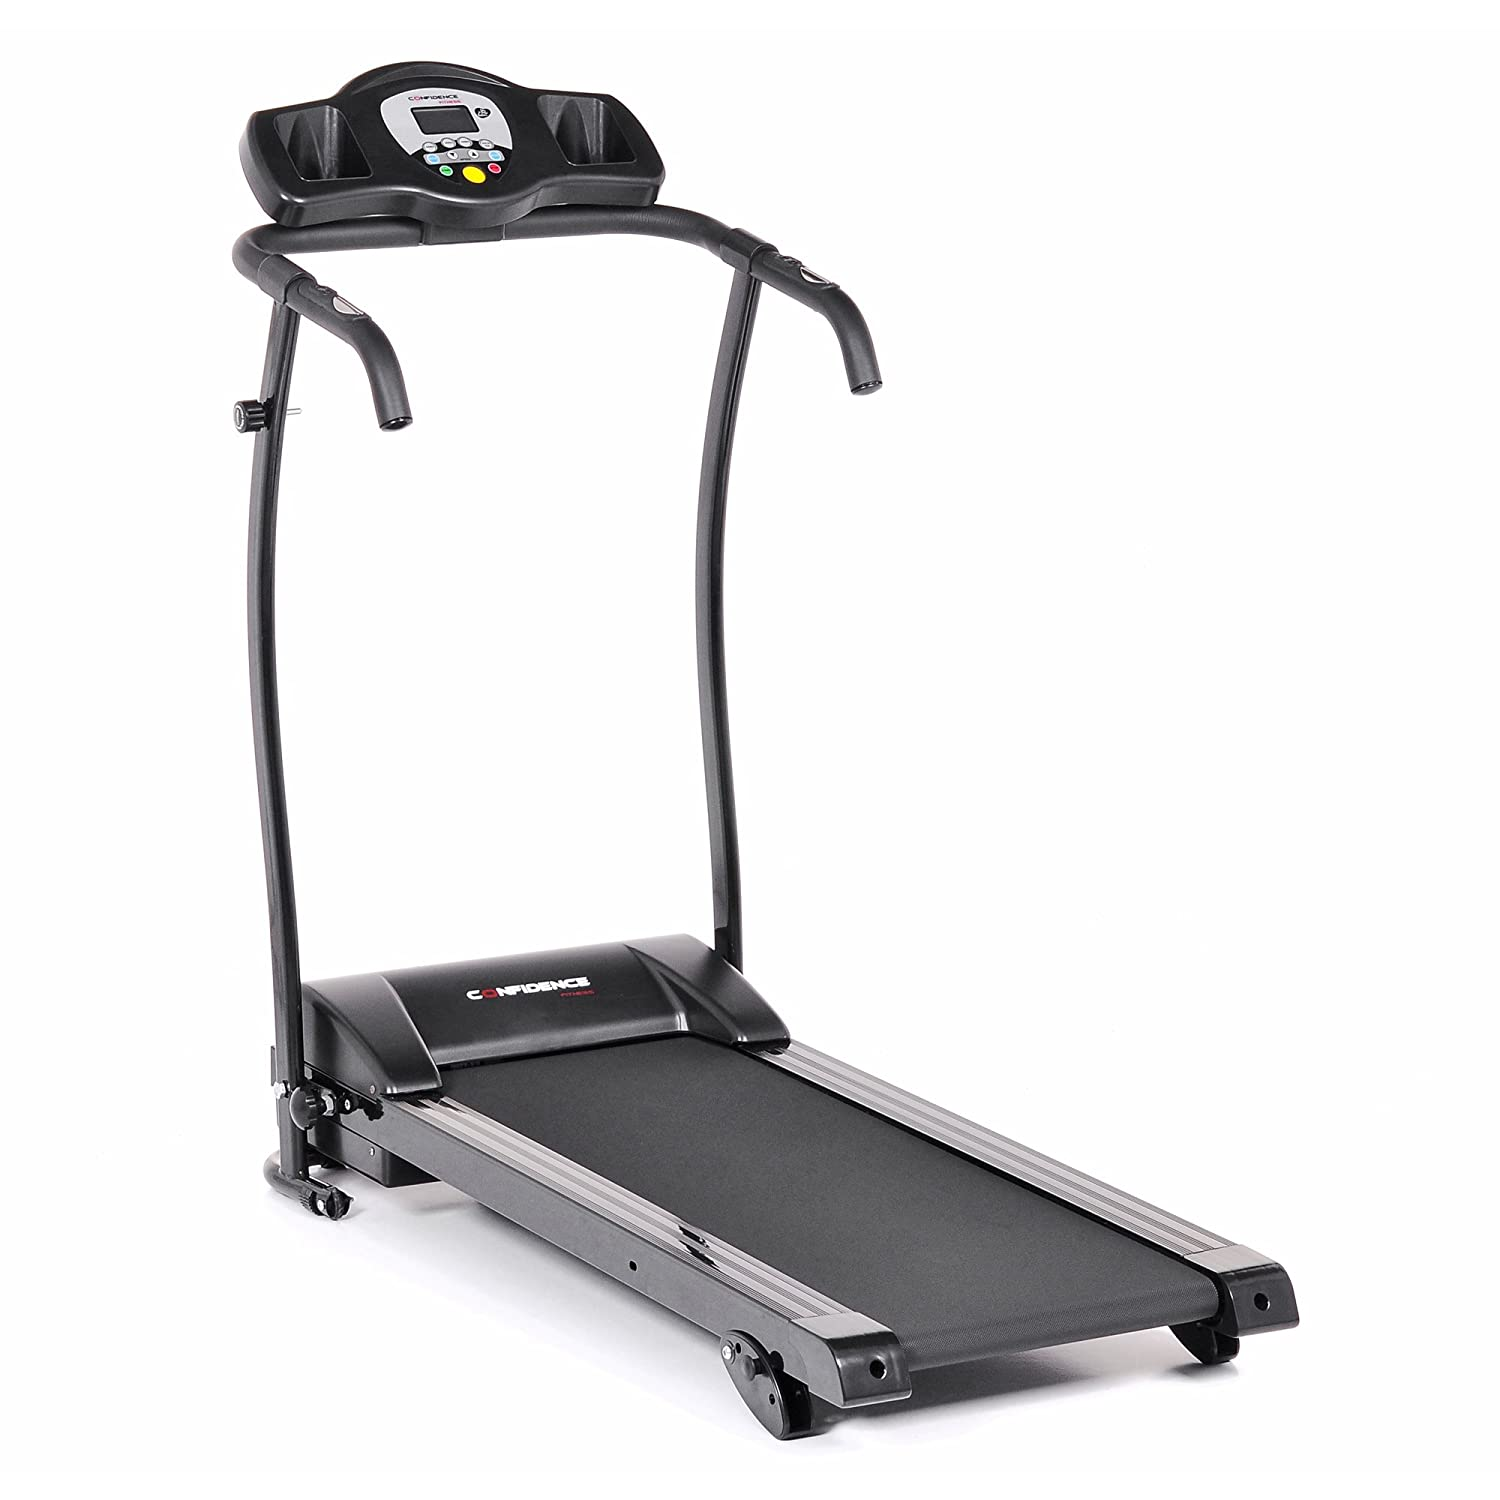 The Best Treadmill Under $500 4